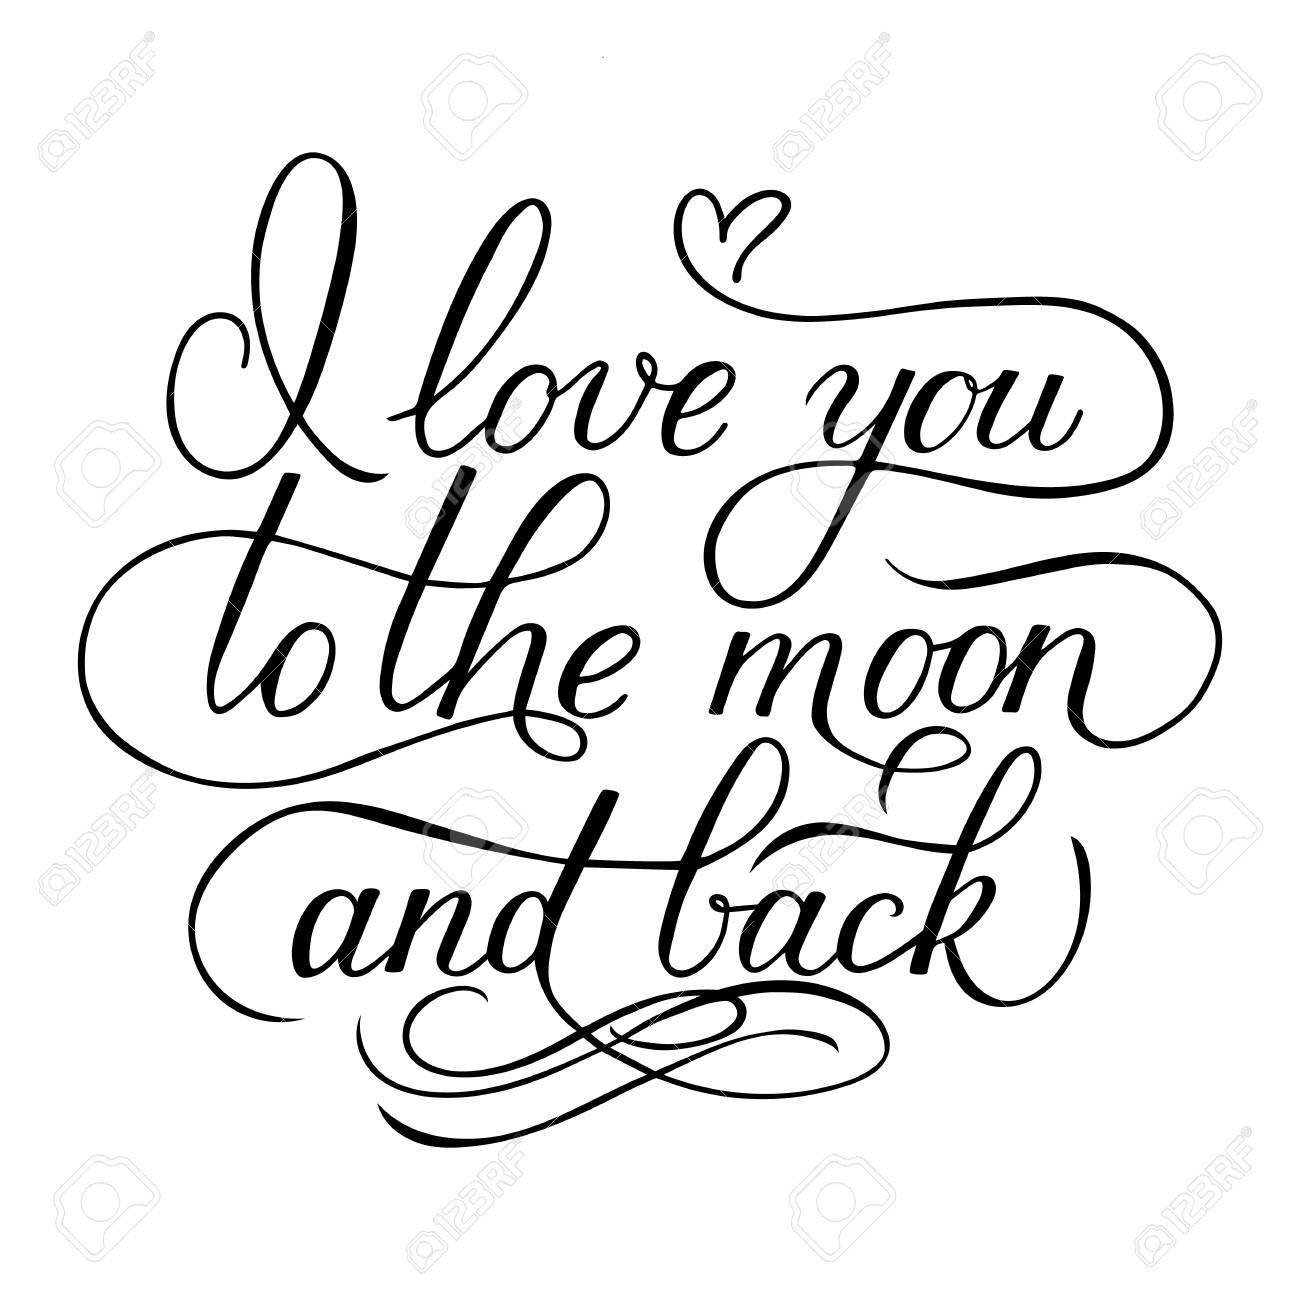 I love you to the moon and back. Calligraphy hand lettering. Handwritten quote sign. Easy to edit template for Valentines day greeting card, posters, banners, nursery décor, textile prints, etc. - 117422080